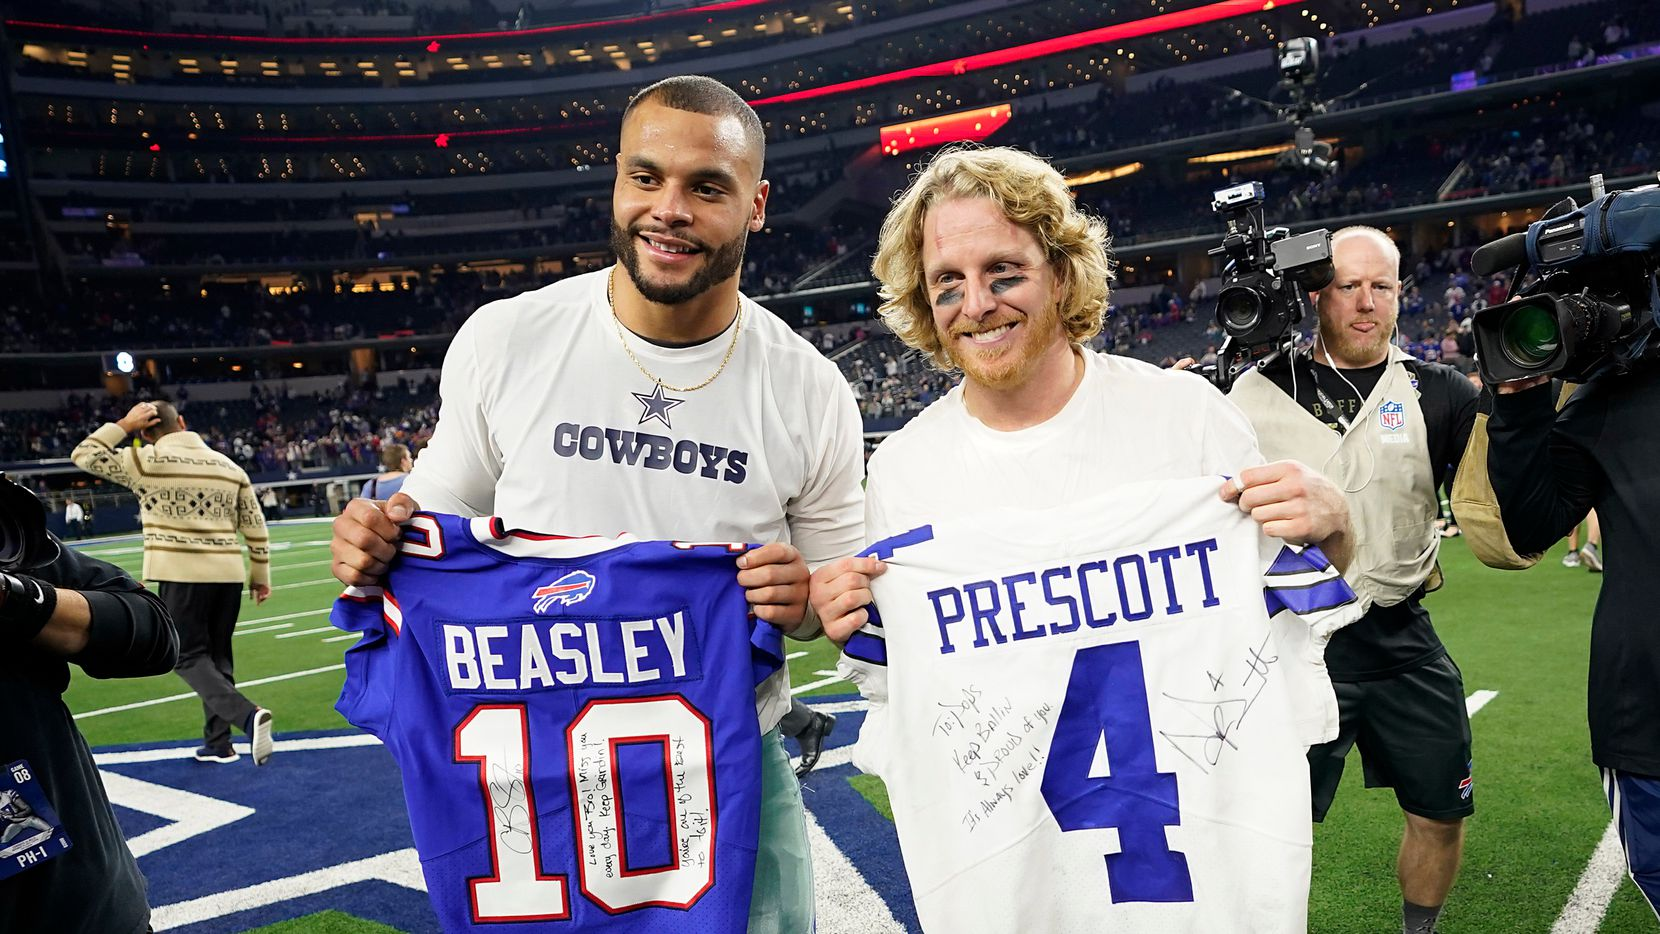 Dallas Cowboys quarterback Dak Prescott (left) exchanges jersey with Buffalo Bills wide receiver Cole Beasley after an NFL football game at AT&T Stadium on Thursday, Nov. 28, 2019, in Arlington.